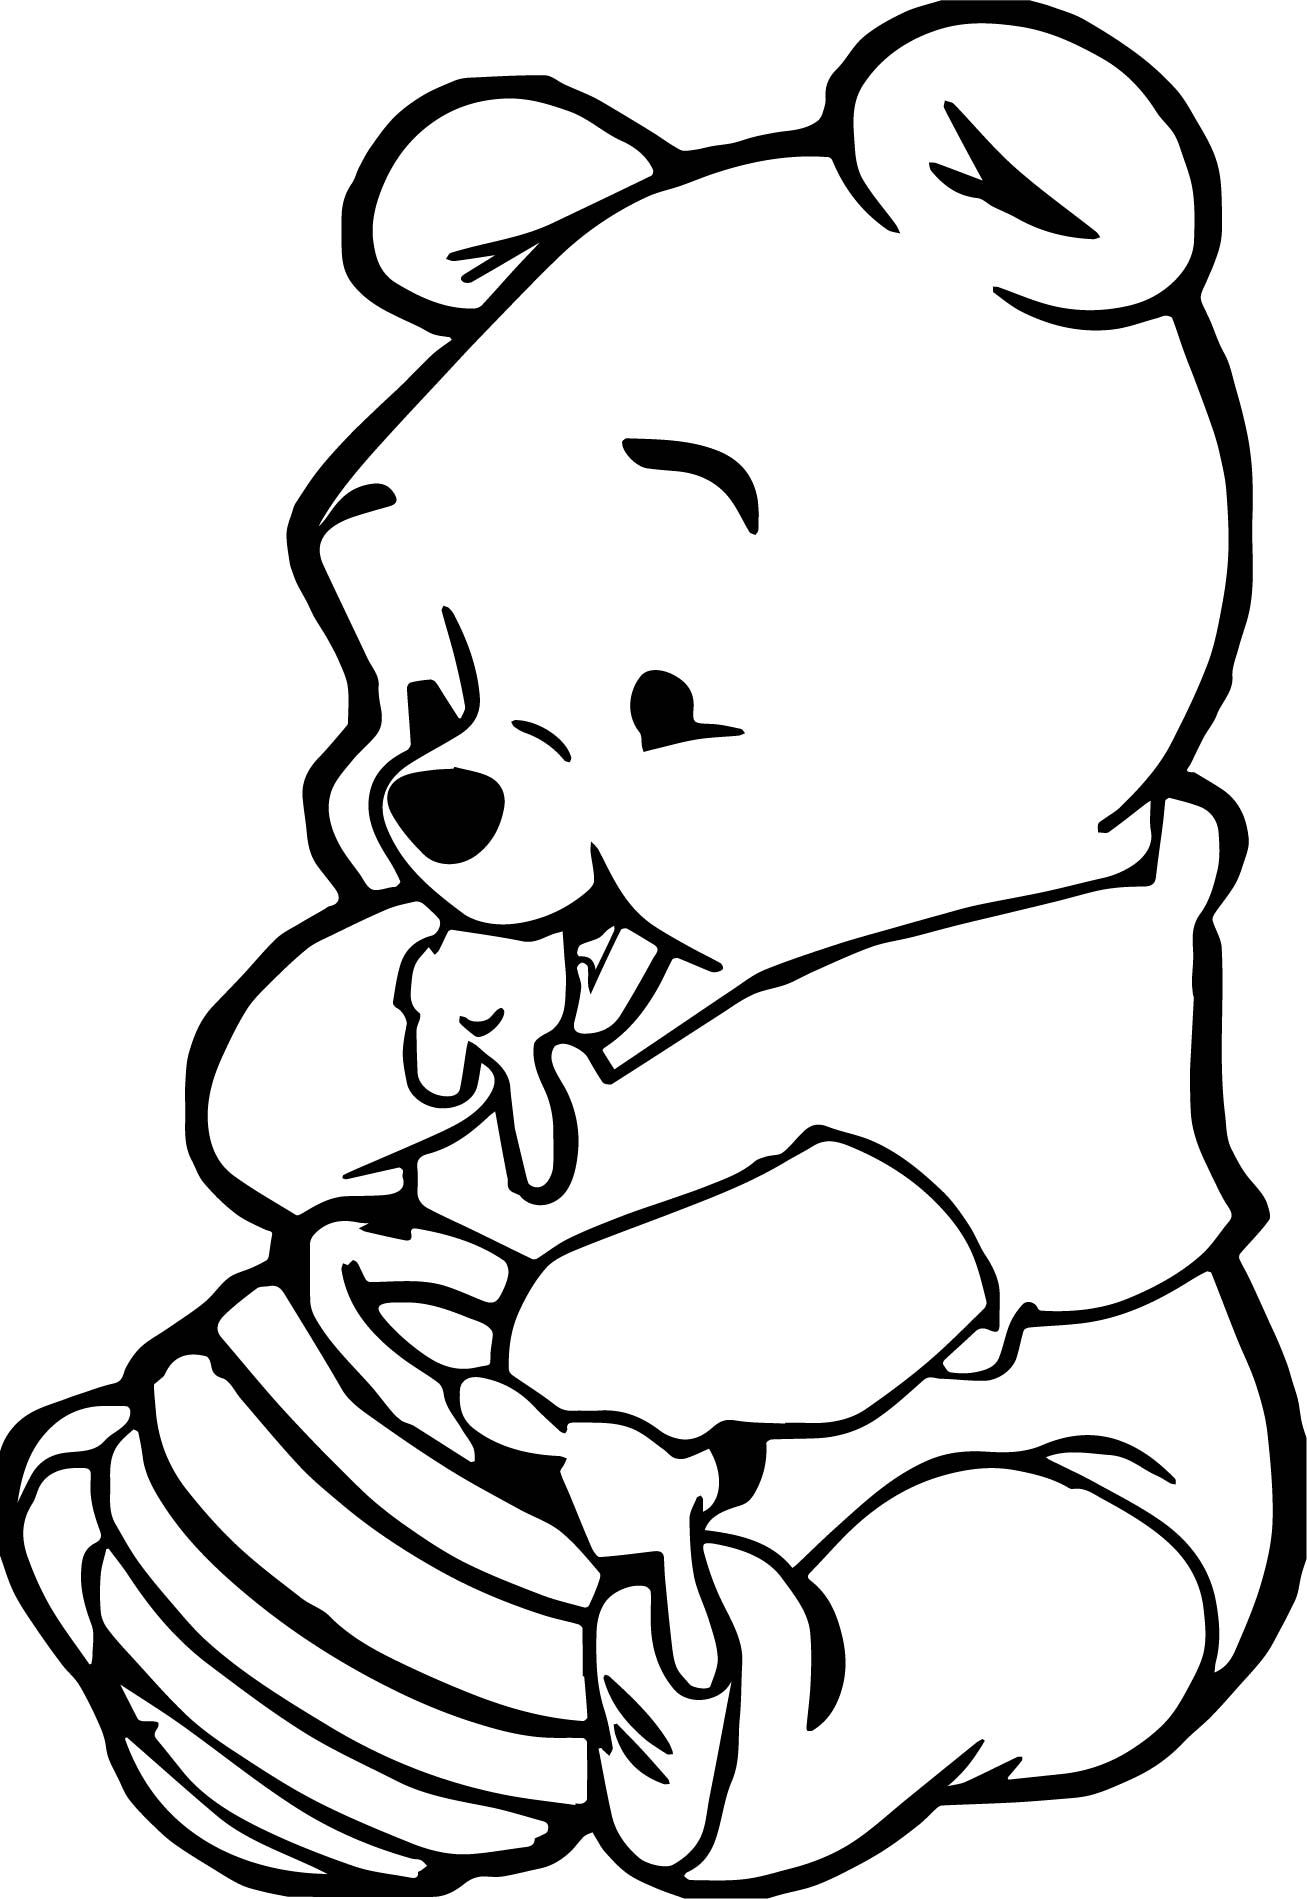 Awesome Cute Baby Winnie The Pooh Eating Hunny Coloring Page